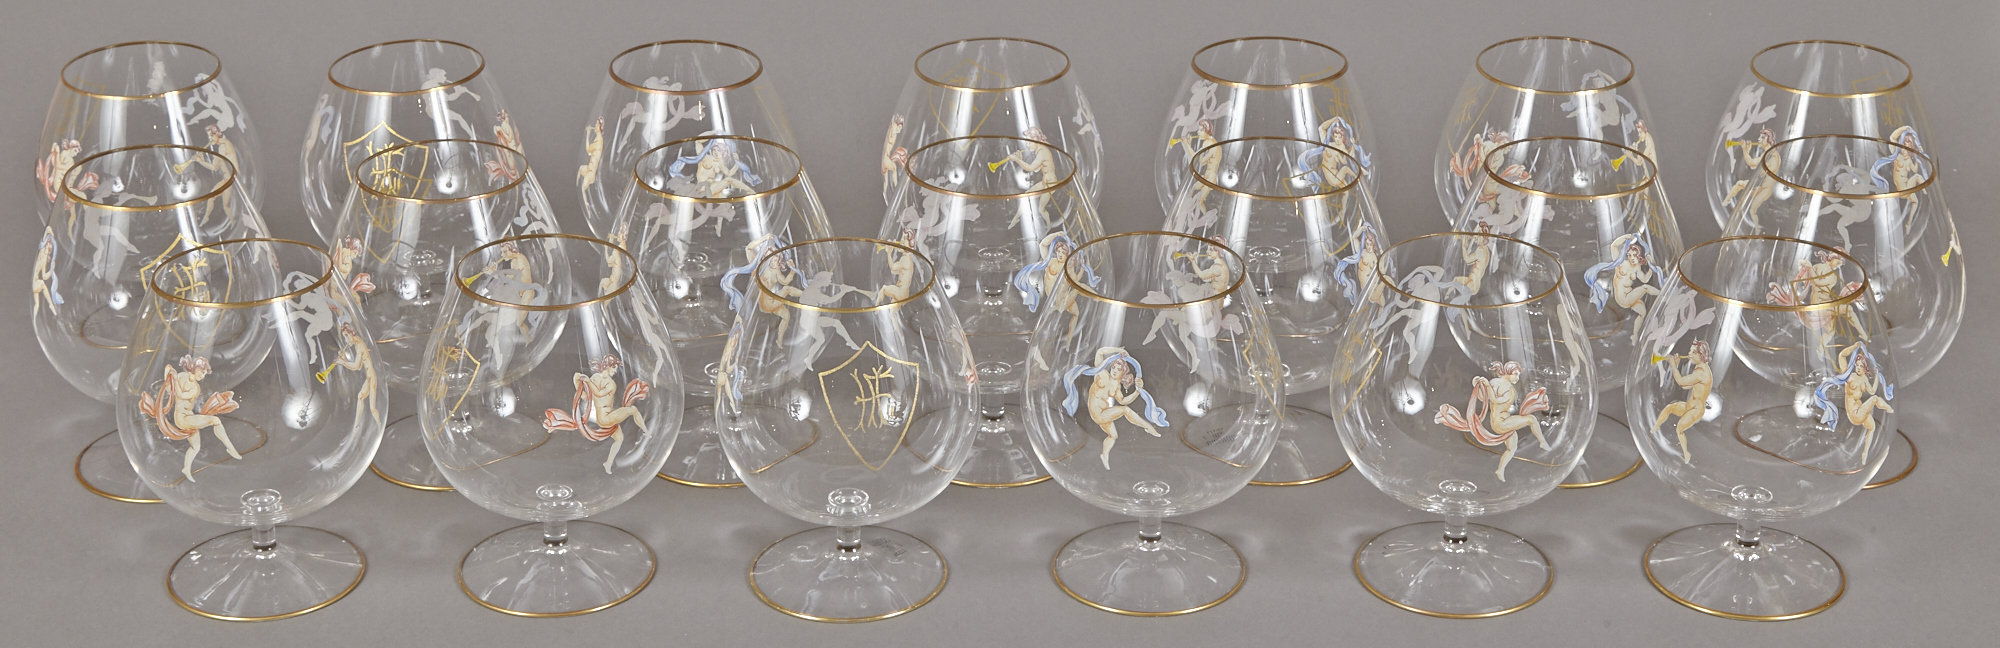 Lot image - Set of Twenty Monogramed Glass Brandy Snifters from the Henry Ford II Service